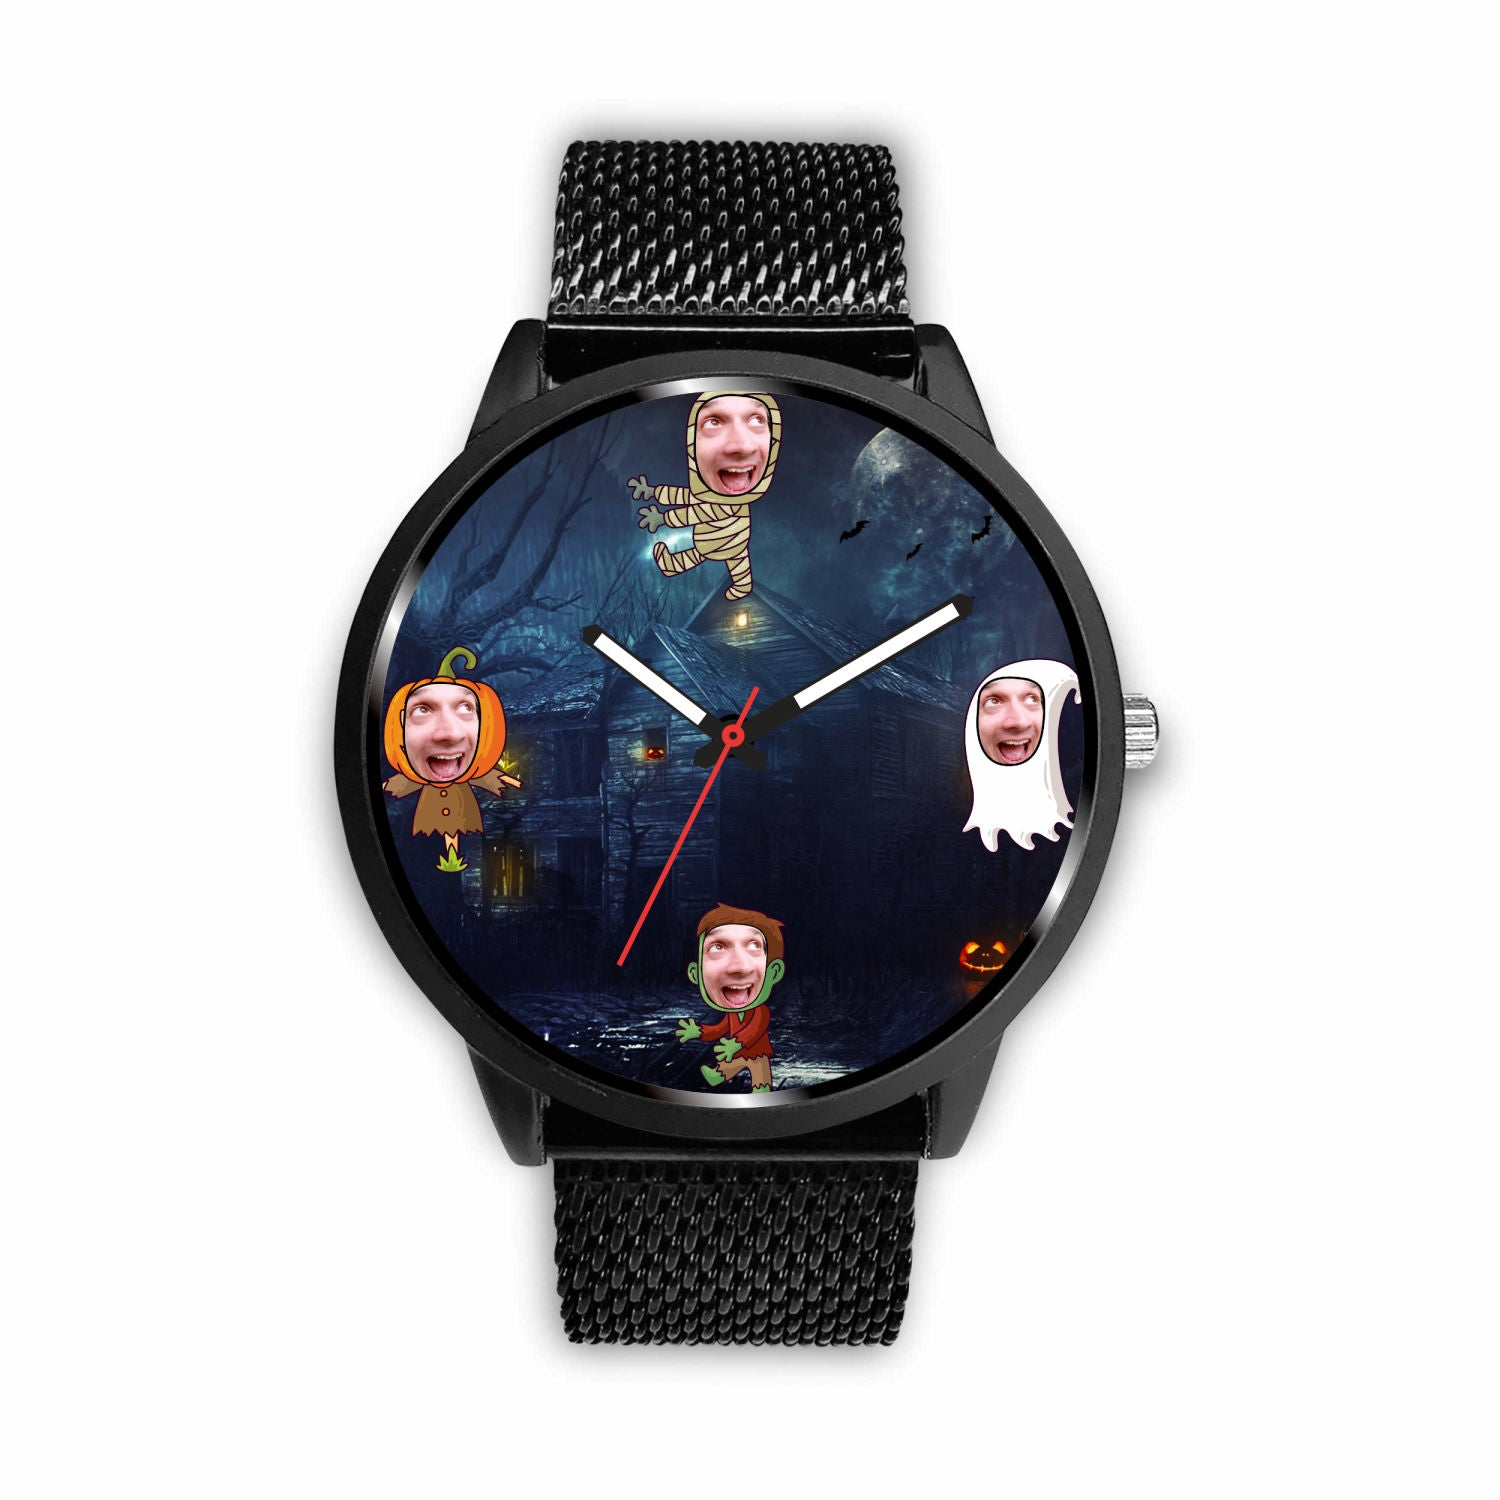 Halloween Watch - Personalized Watch With Your Face